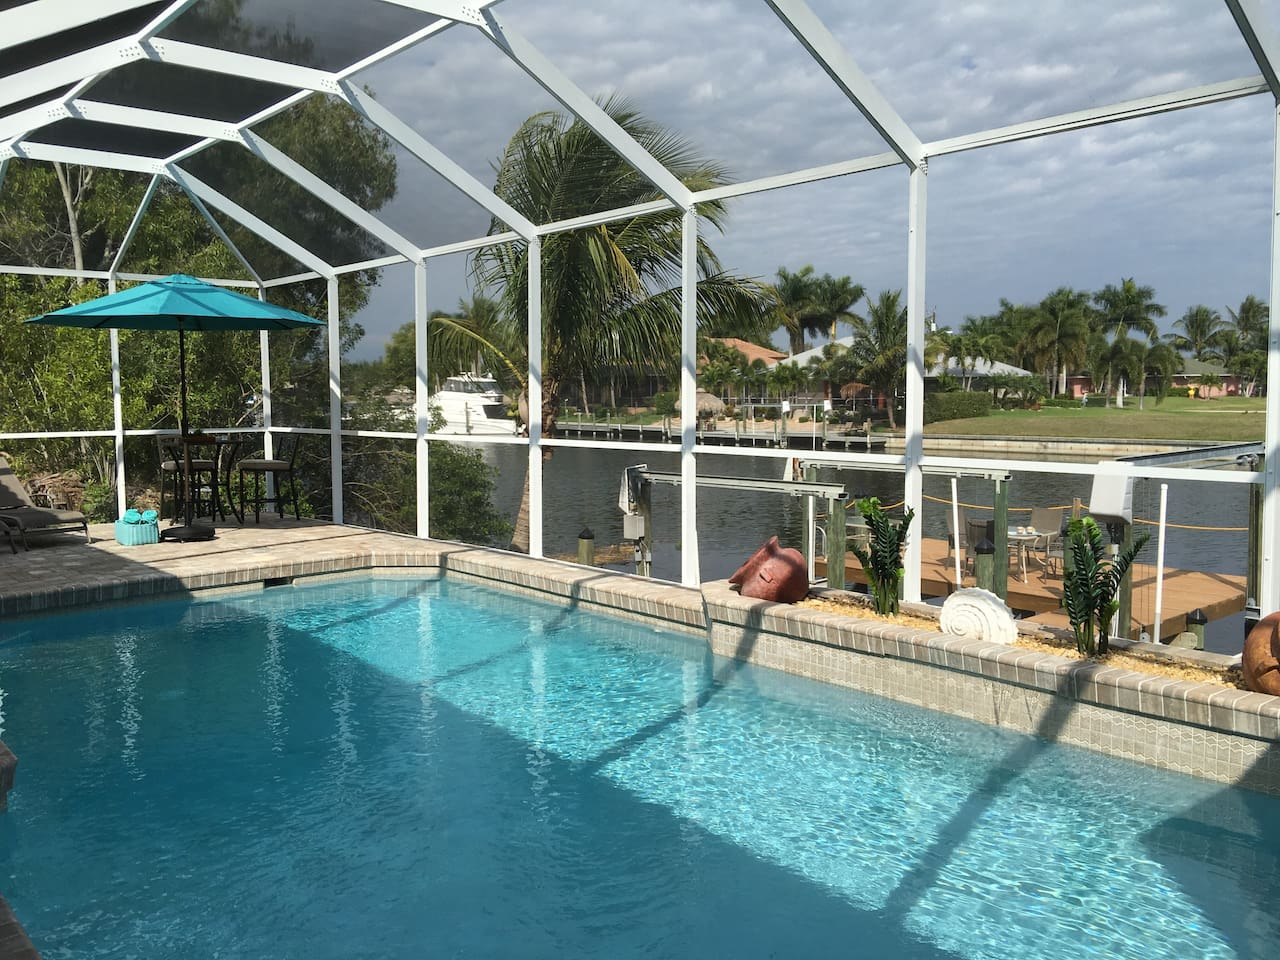 Relax at the pool and Canal of Cape Coral